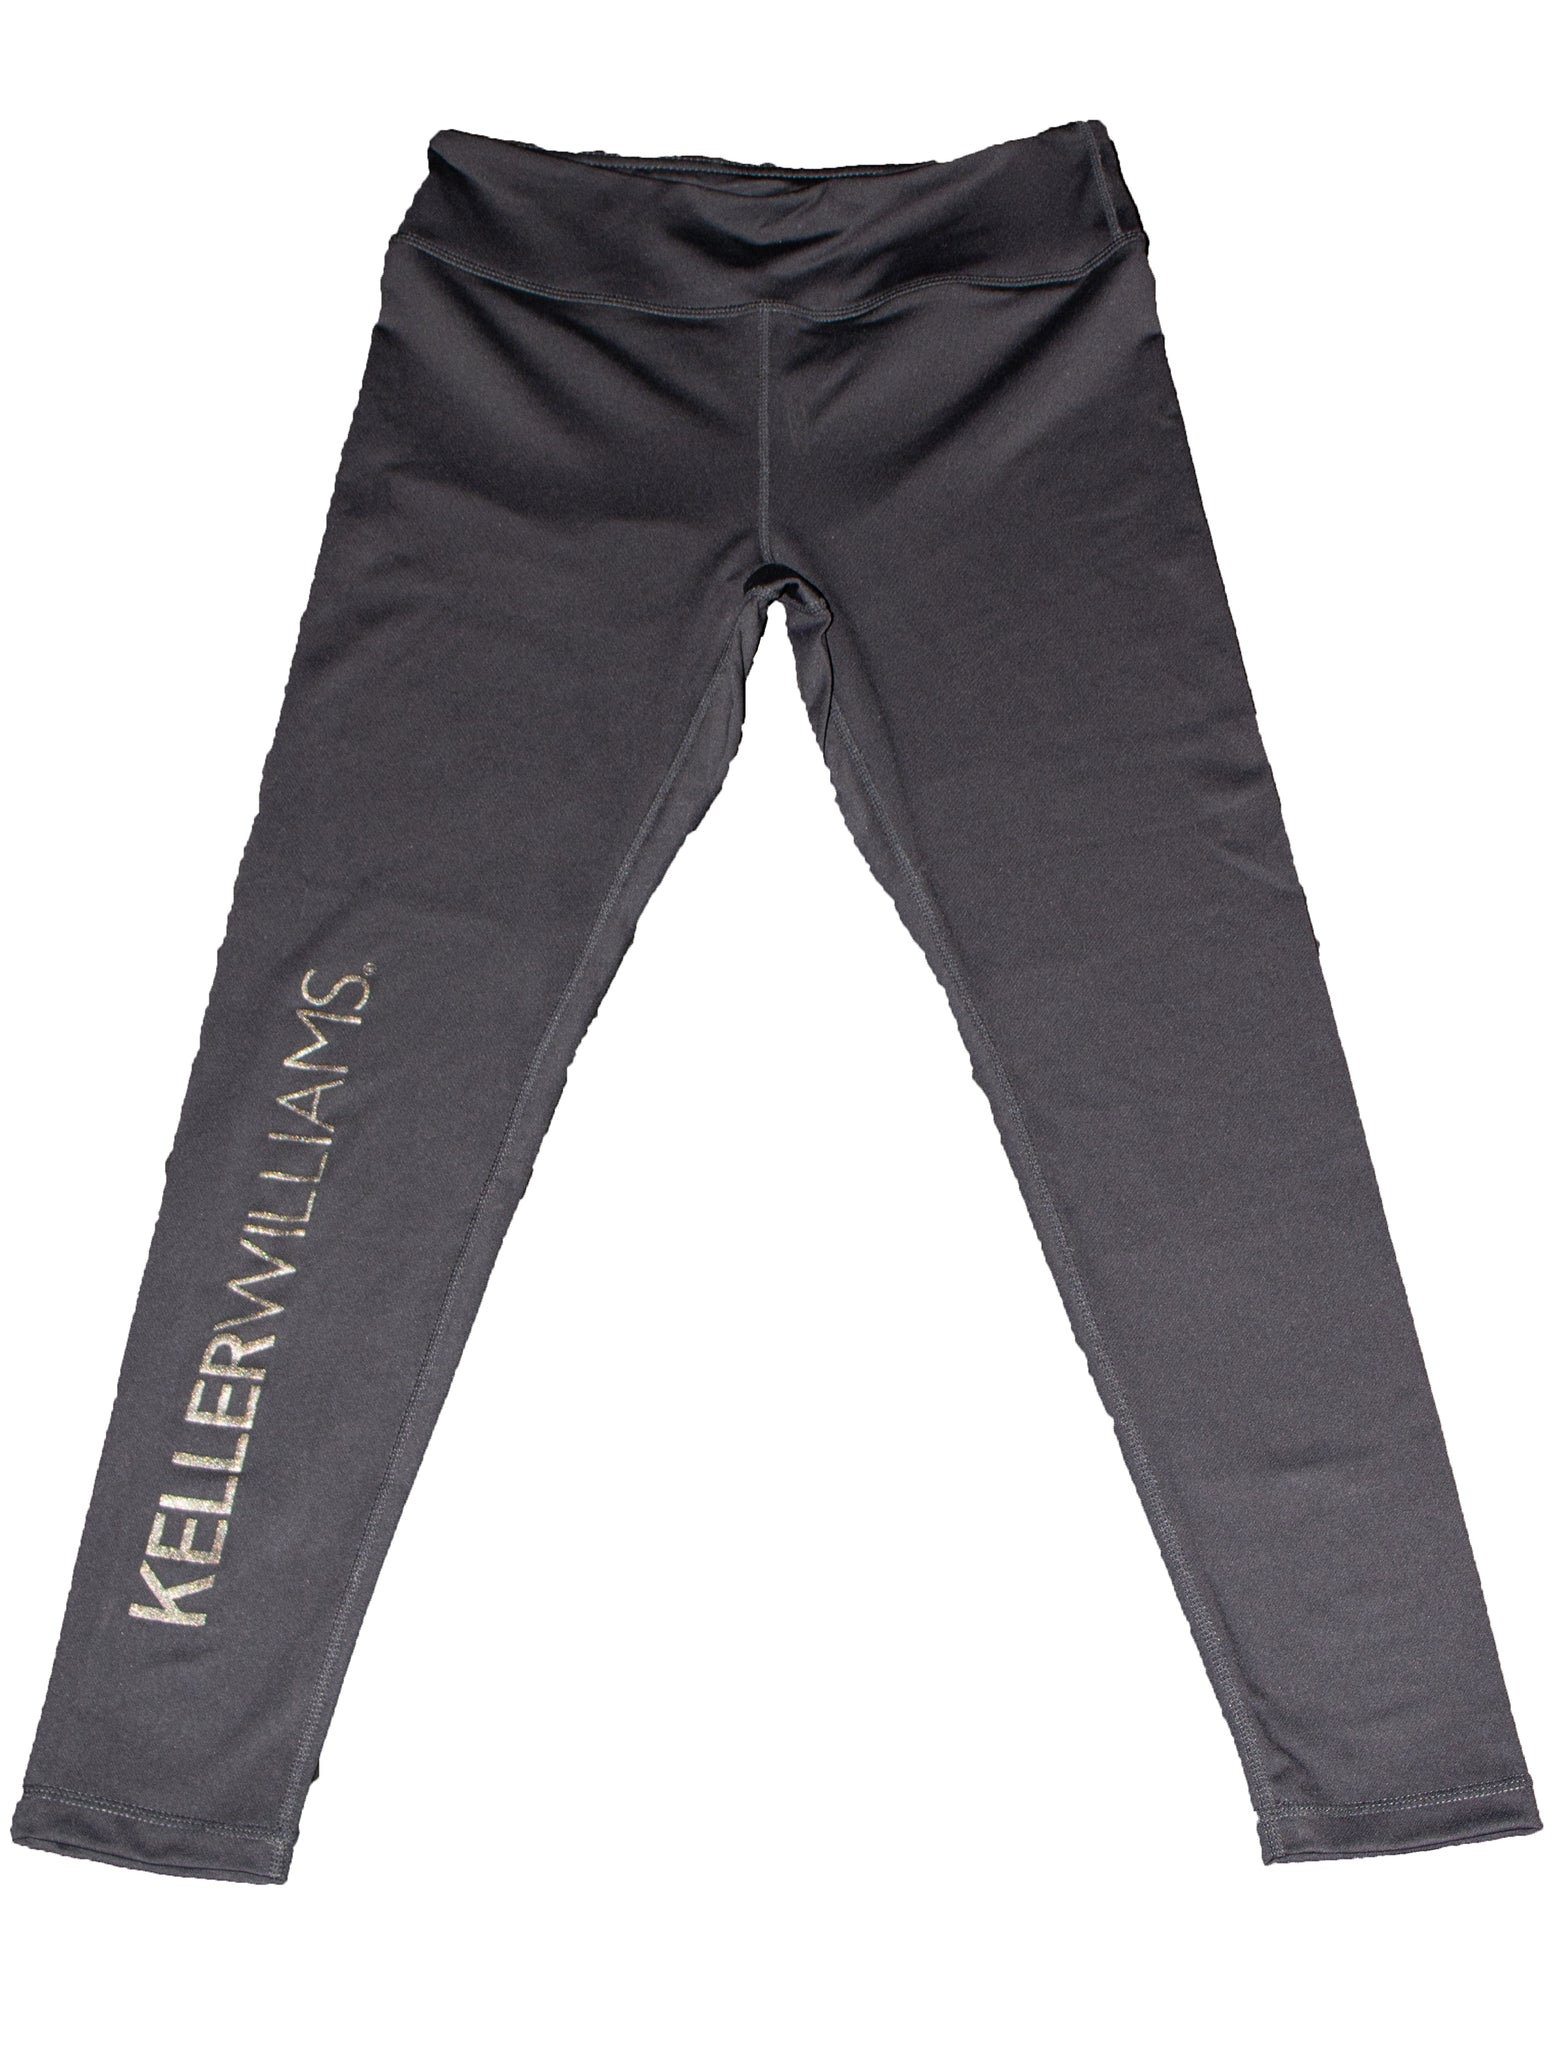 KW Women's Leggings